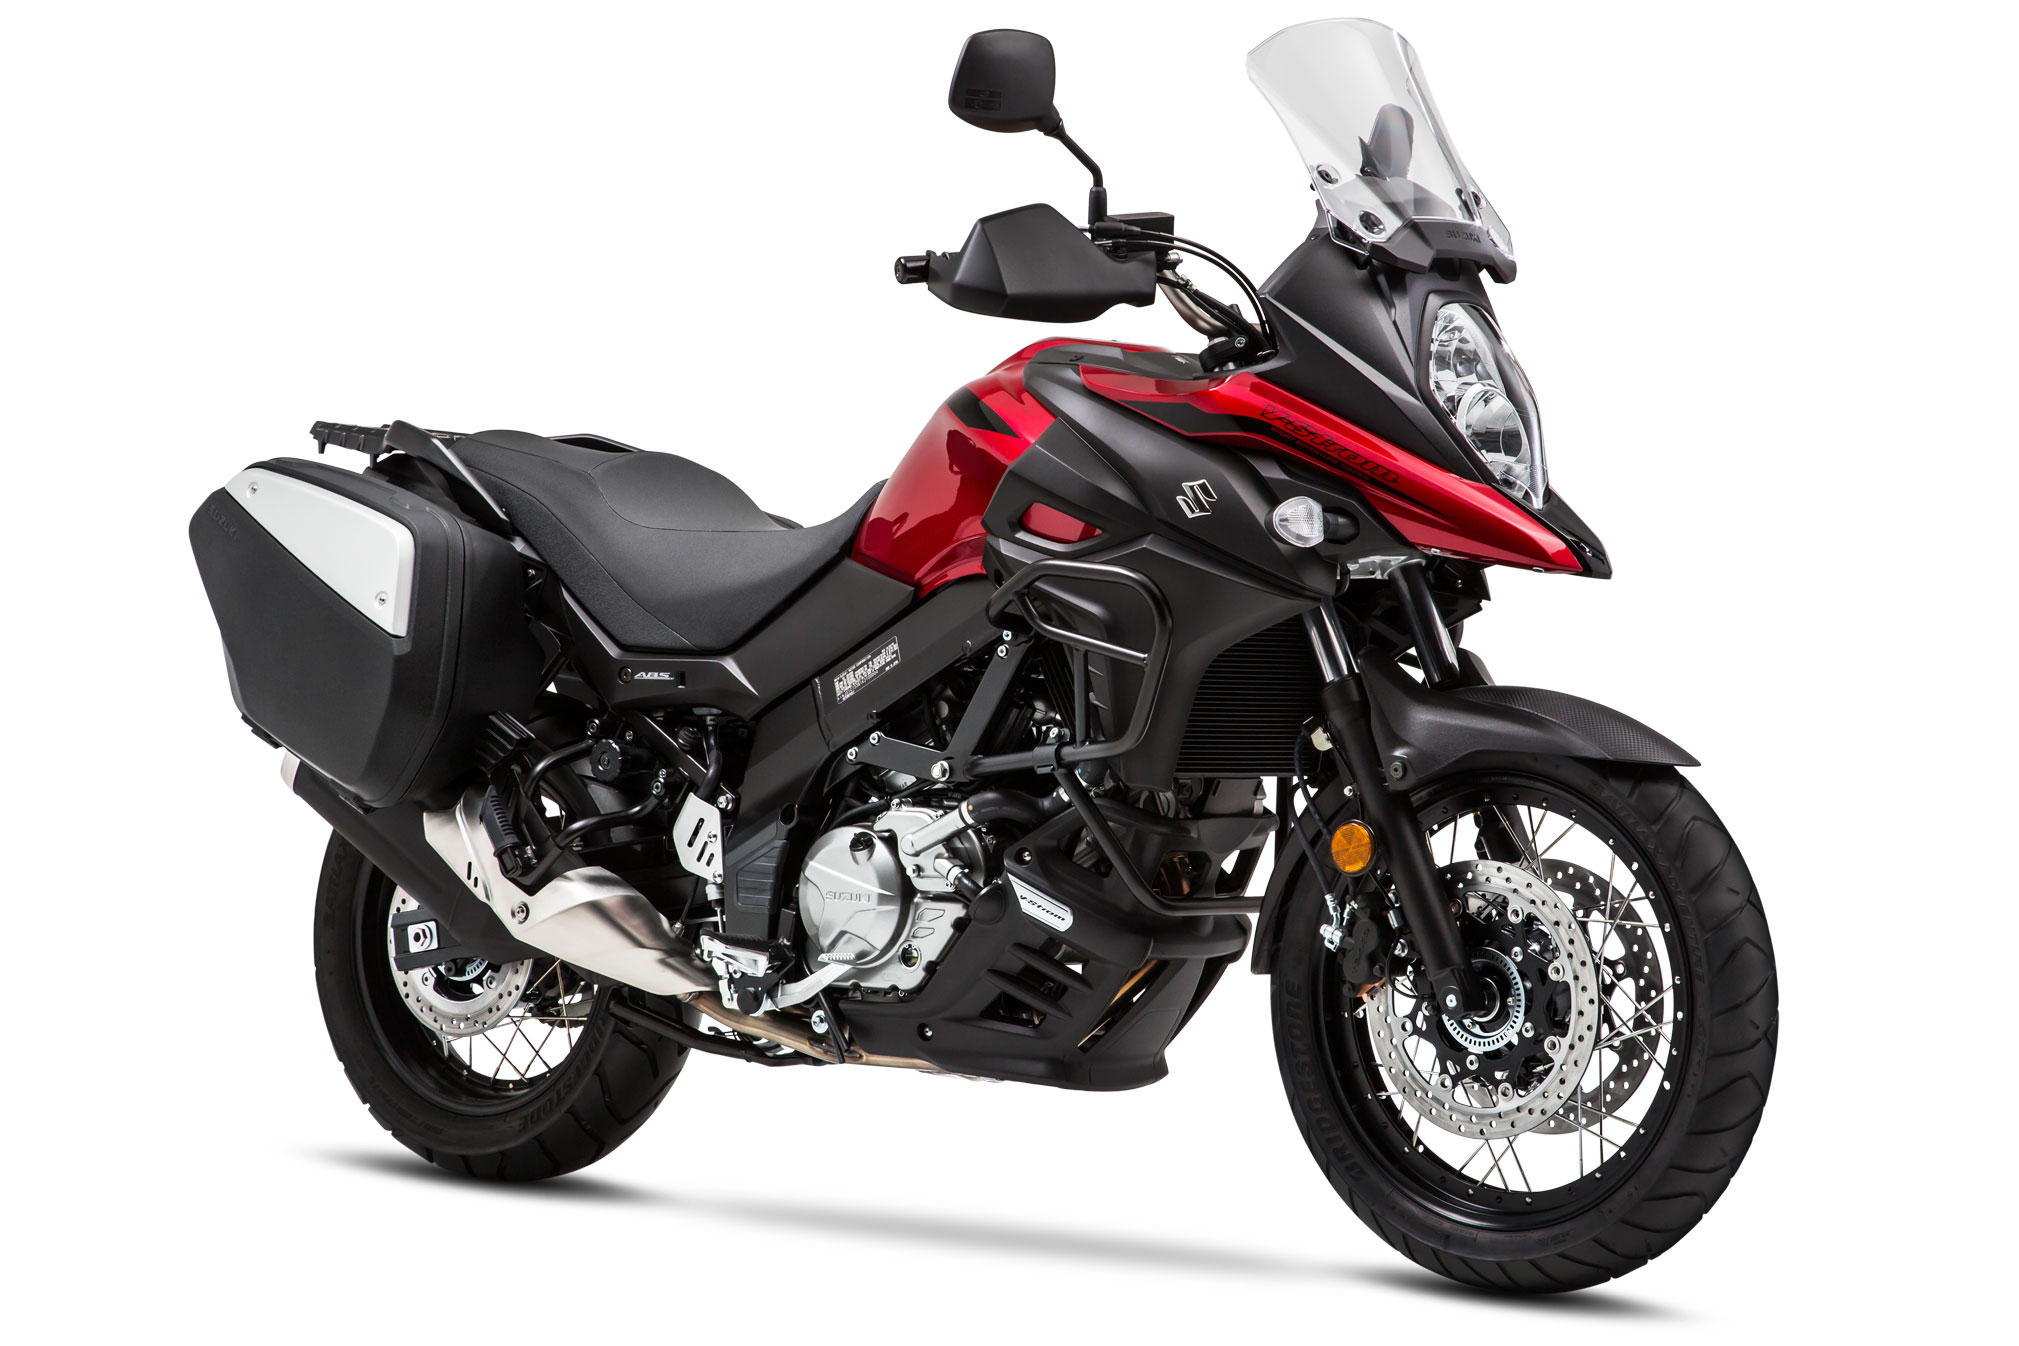 2019 suzuki v strom 650xt touring guide total motorcycle. Black Bedroom Furniture Sets. Home Design Ideas